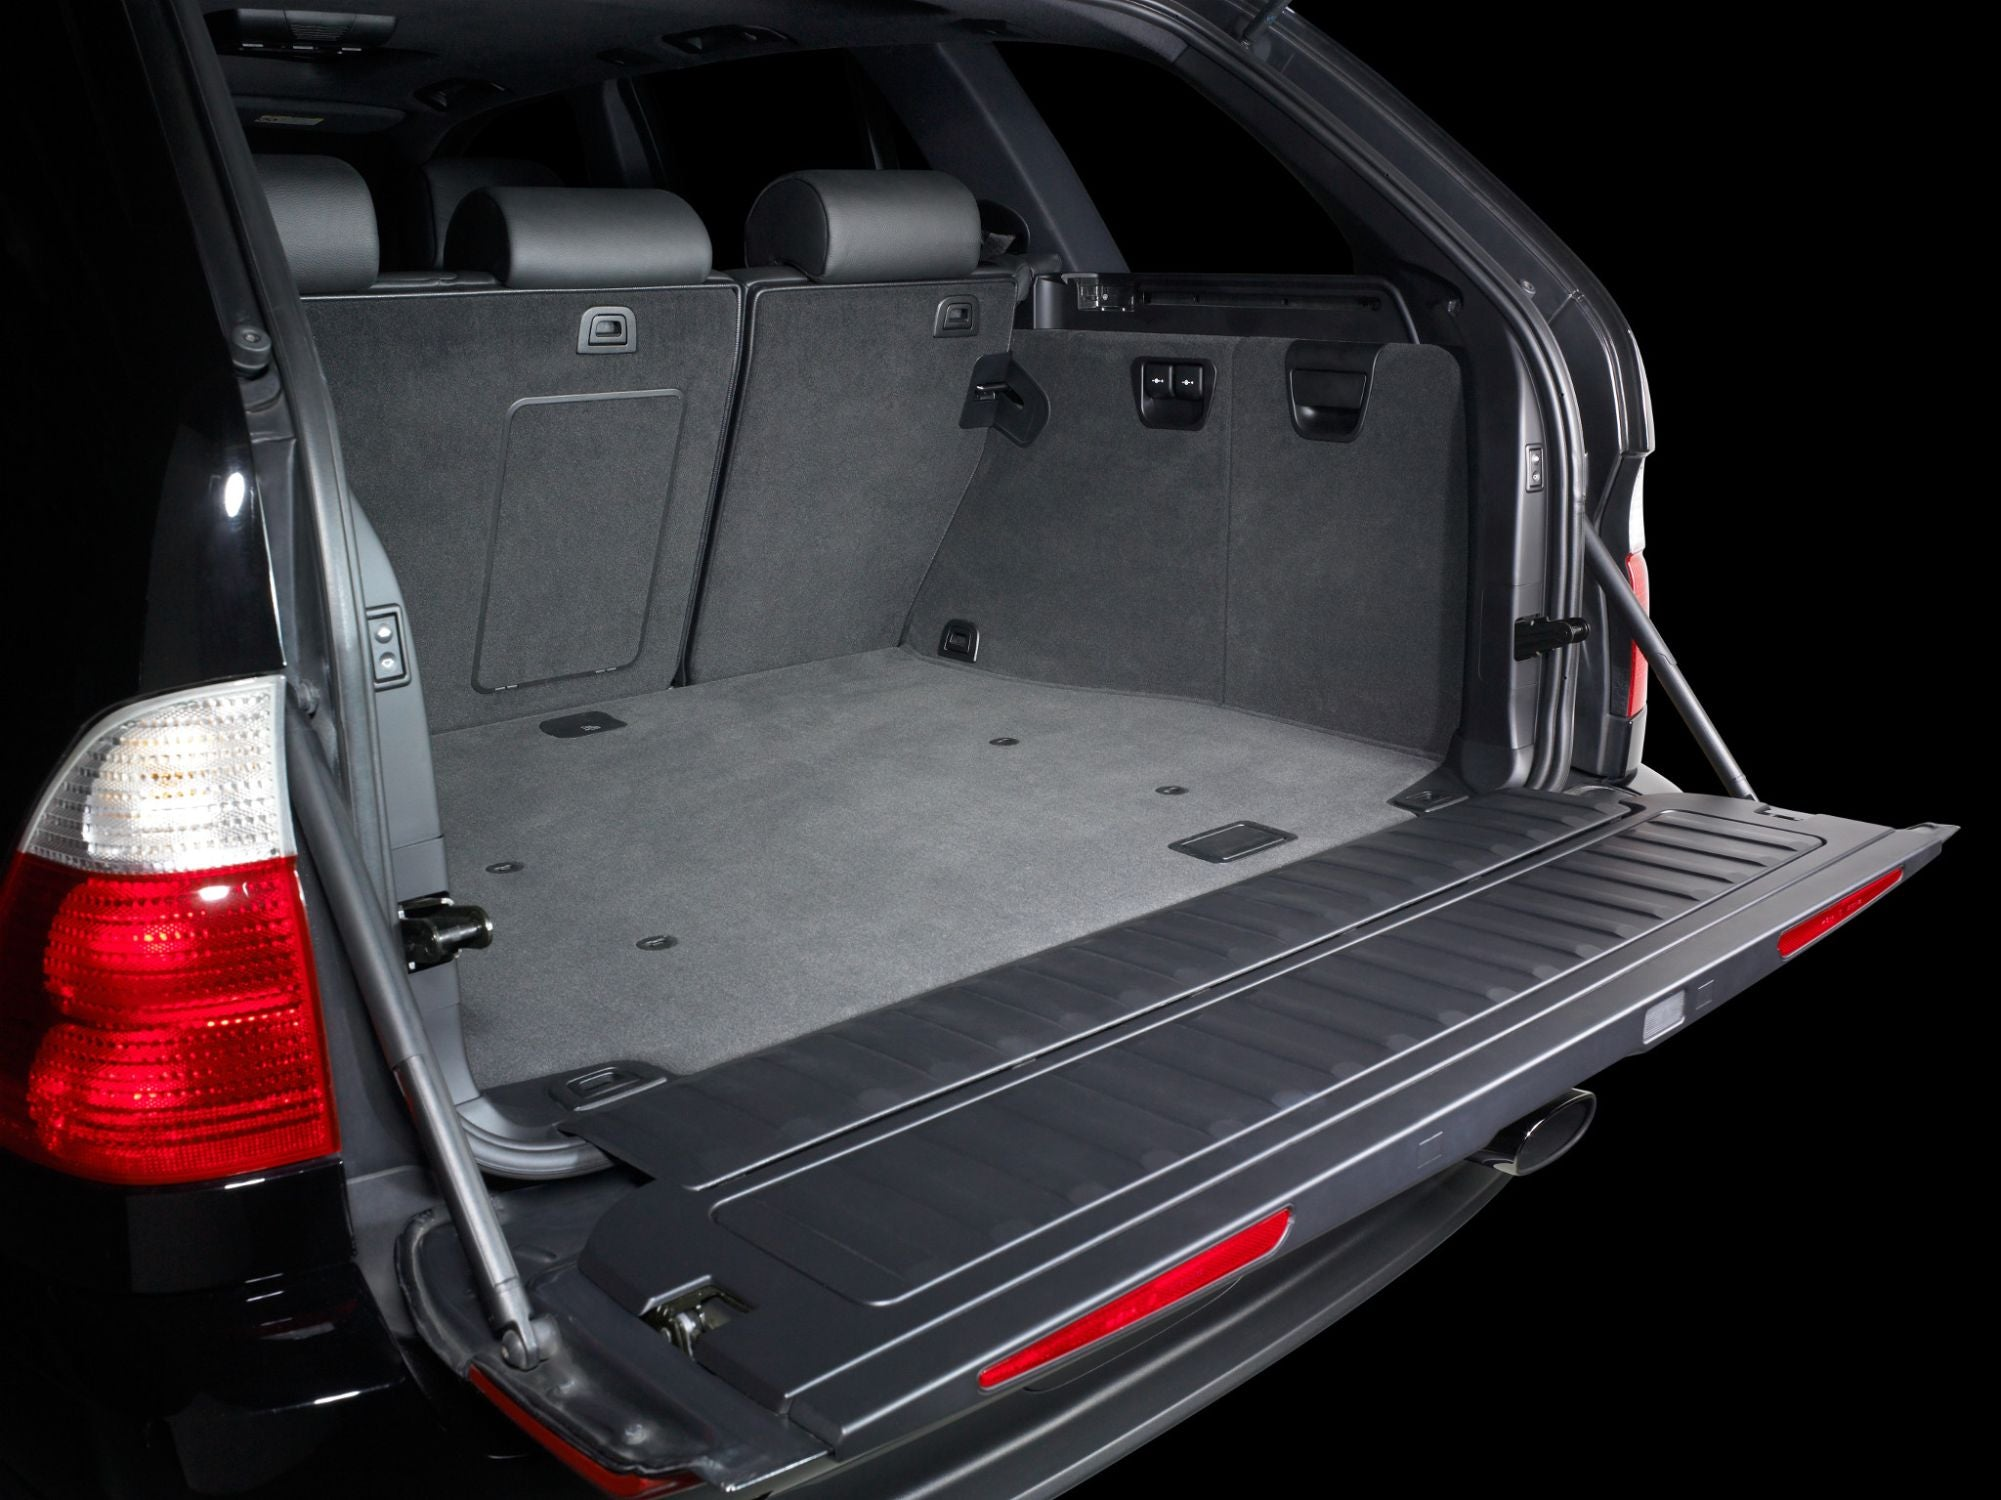 SB-B-X5-10W1v3 Stealthbox Installed in Vehicle